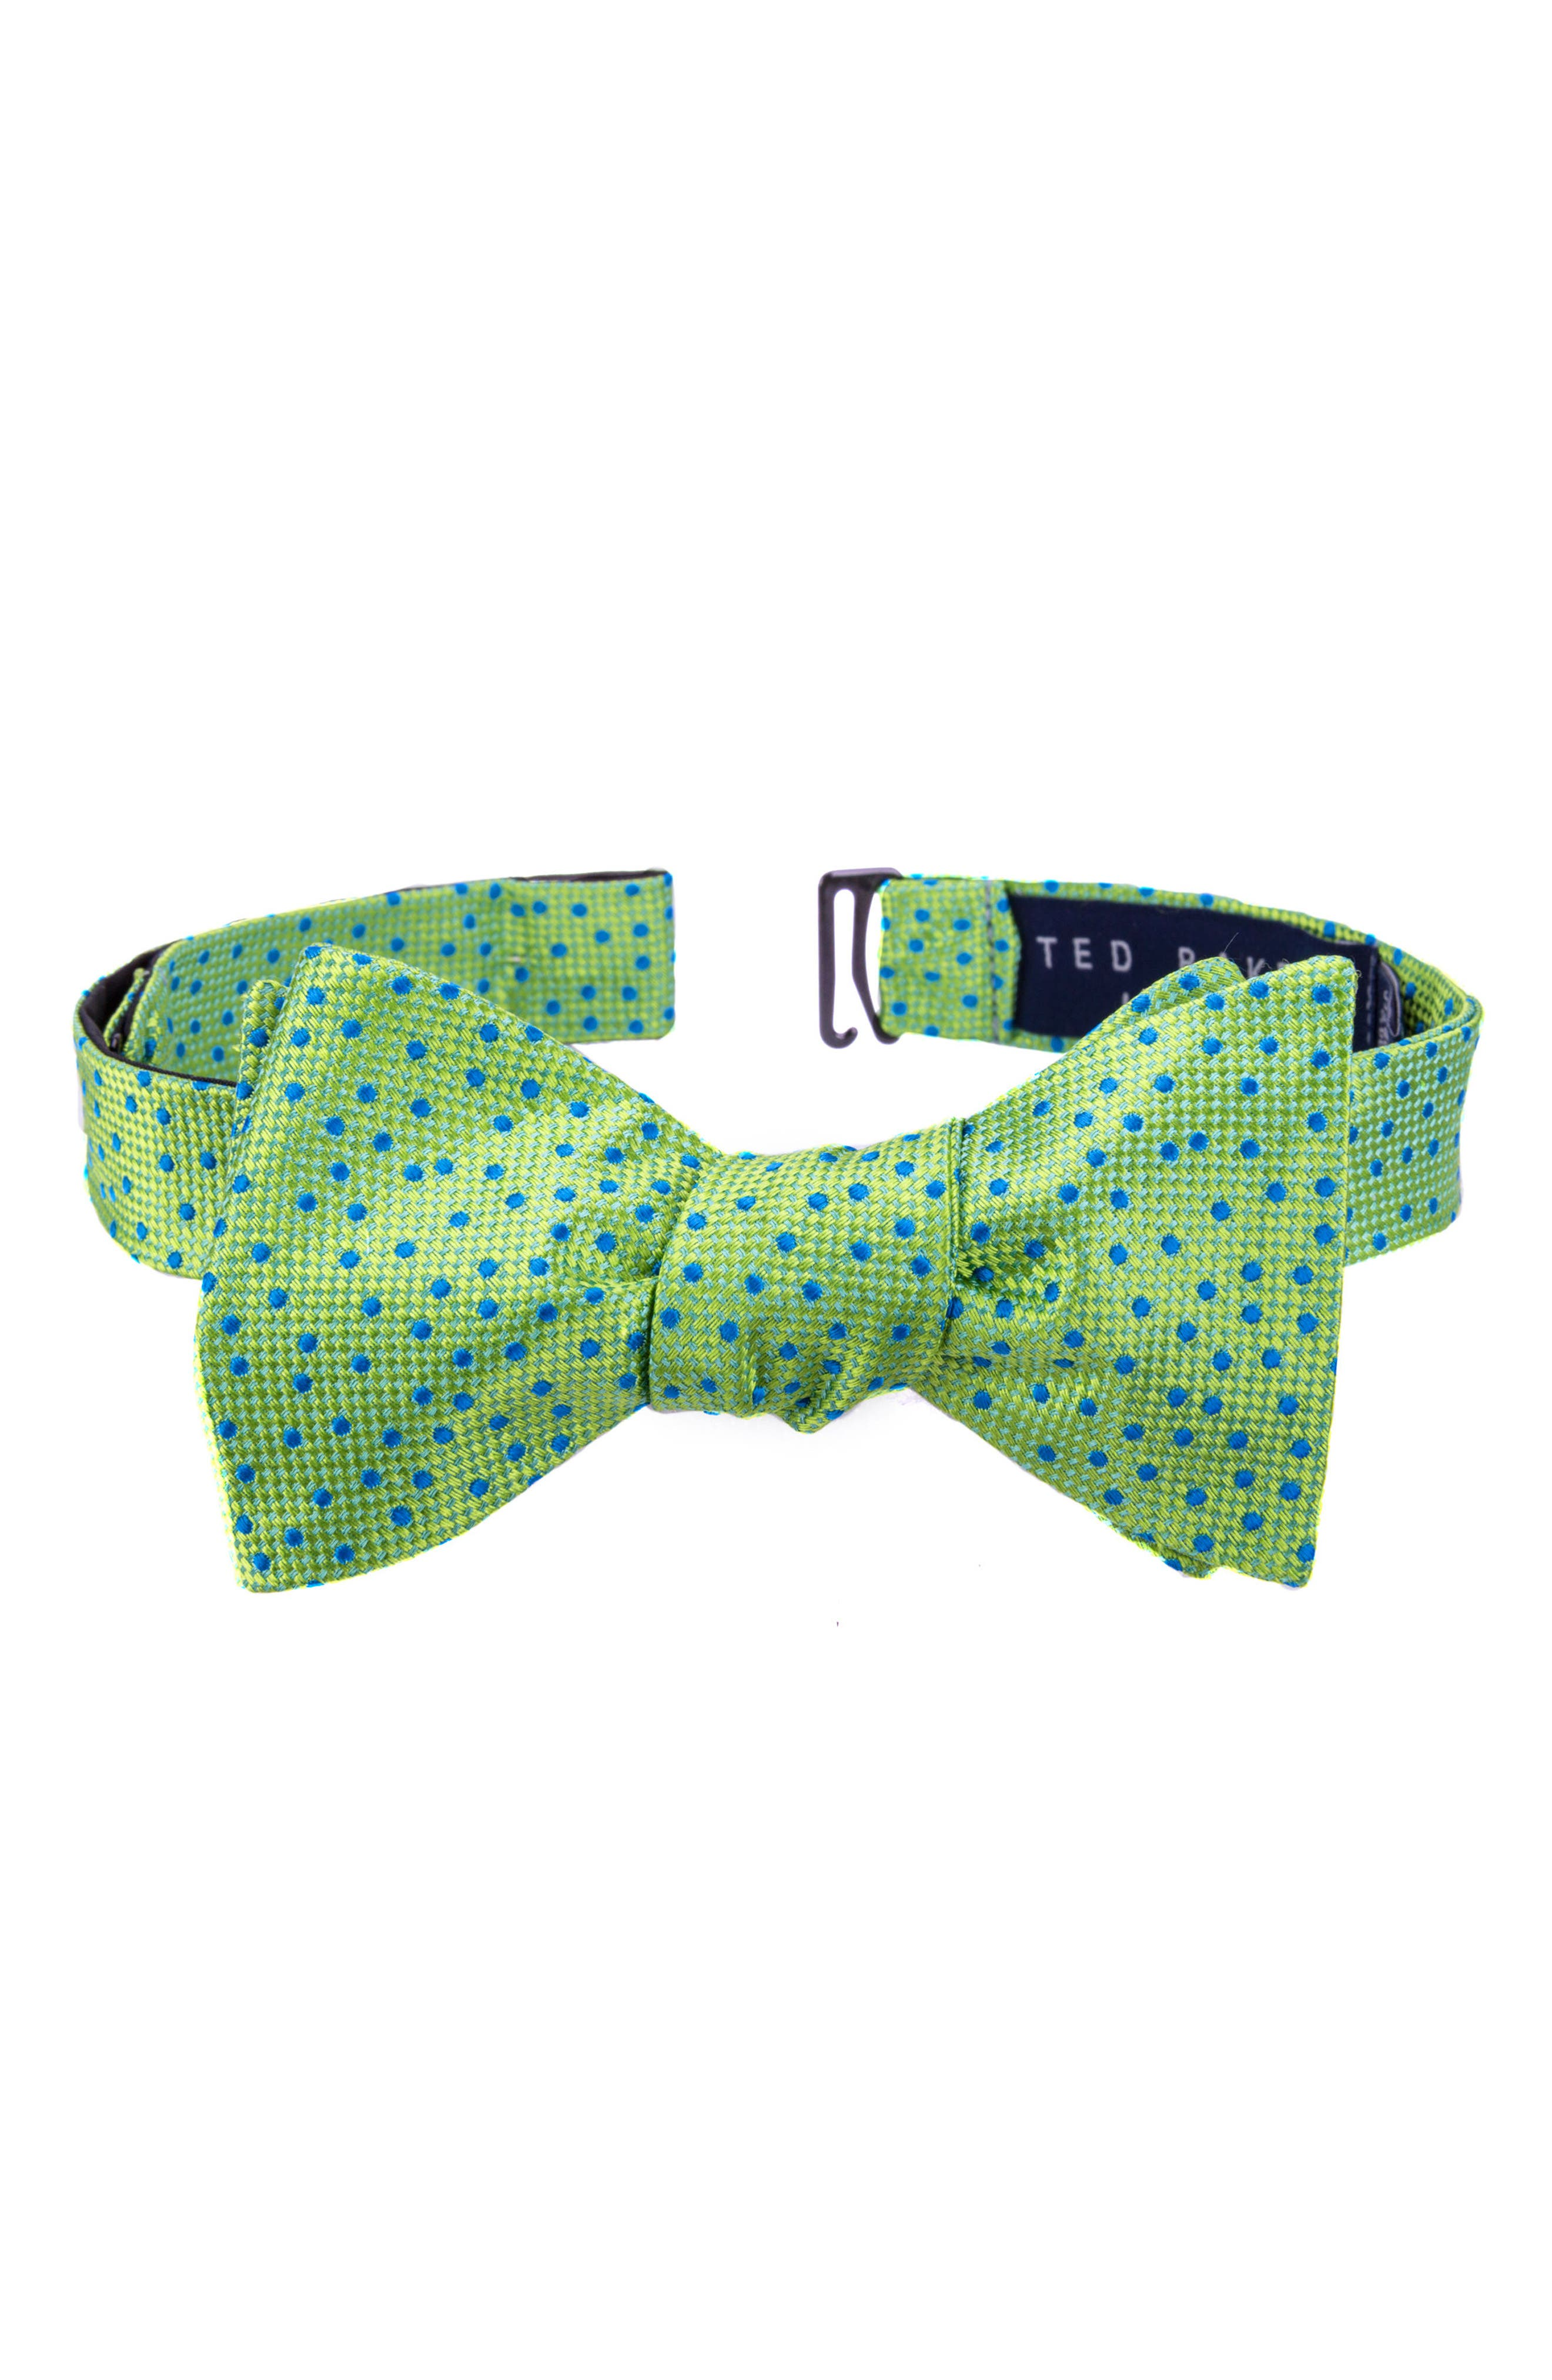 Ted Baker London Jacquard Micro Dot Silk Bow Tie